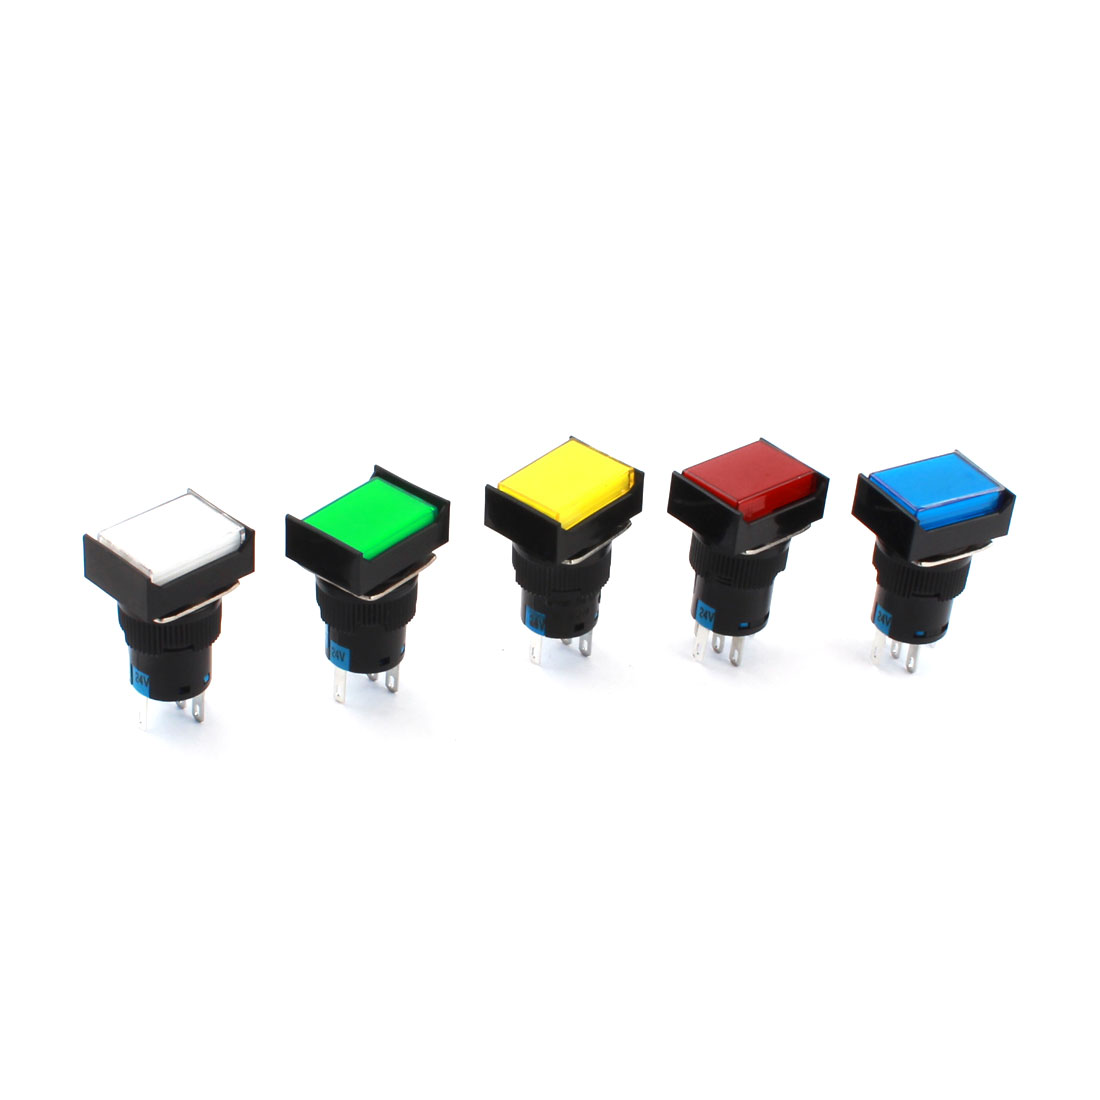 5 Pcs DC 24V 5Colored Indicator Light 16mm Thread Panel Mounted SPDT 1NO 1NC 5Pins Locking Type Rectangle Button Pushbutton Switch